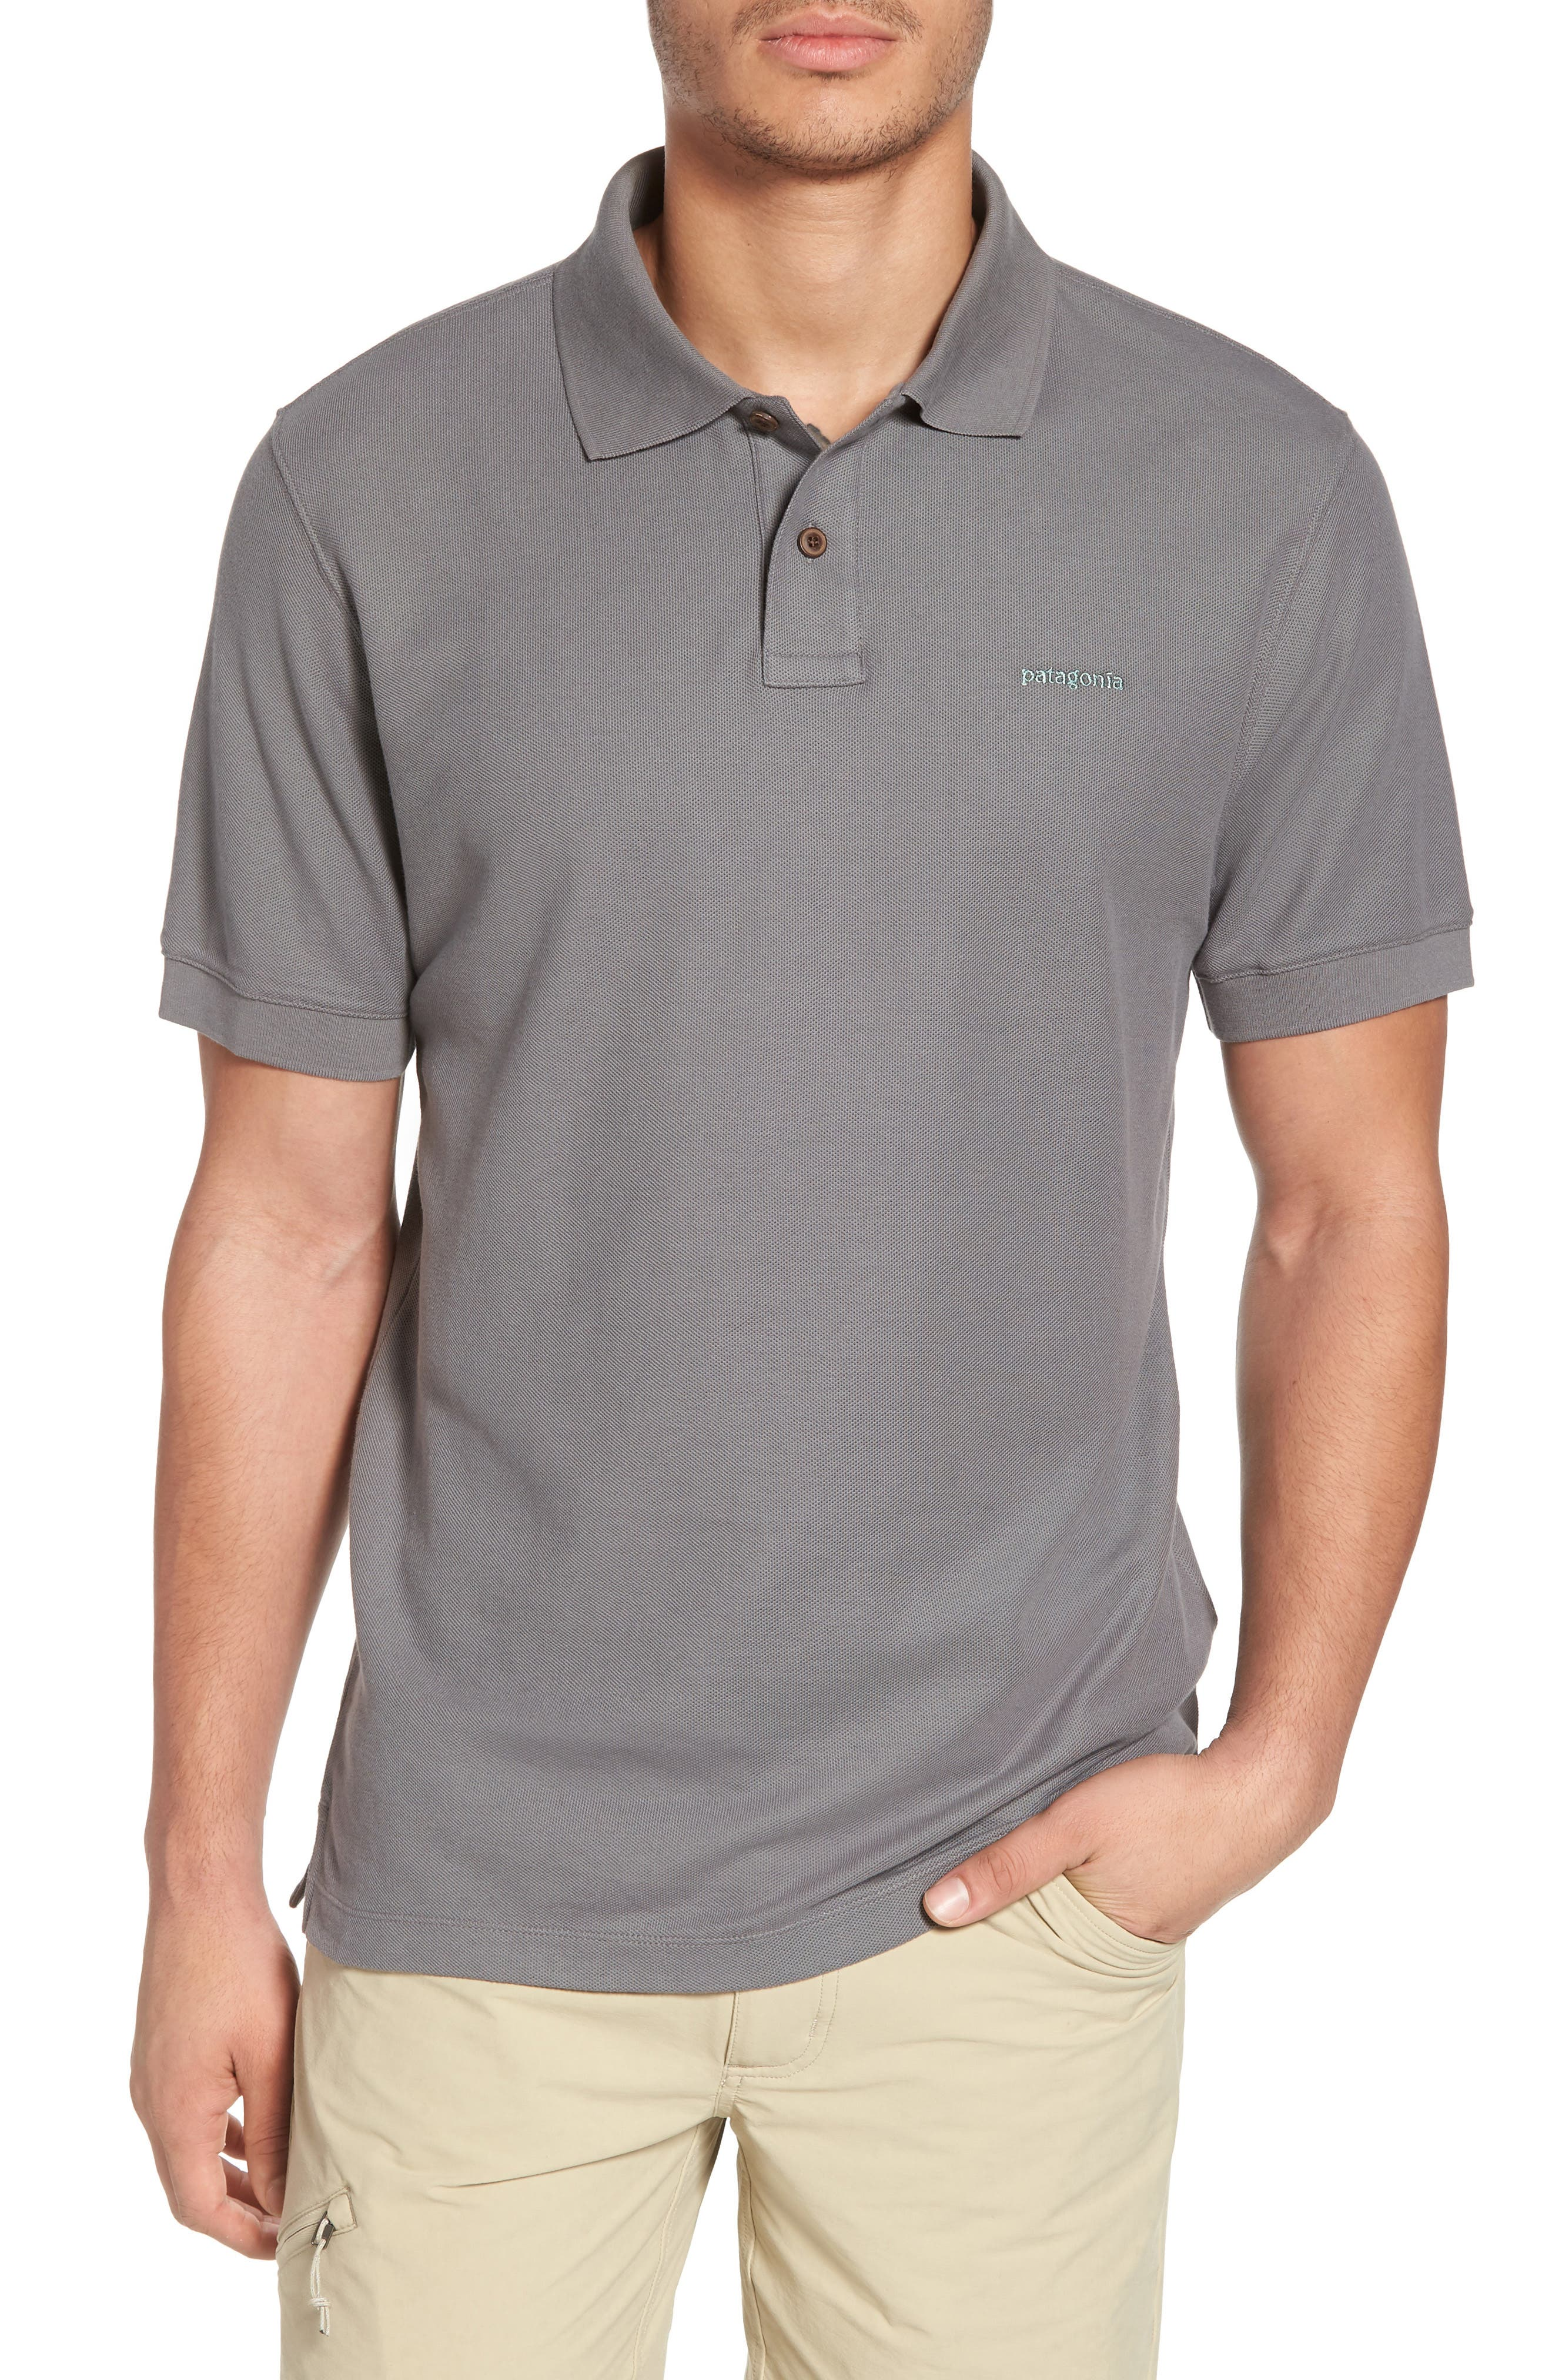 Belwe Relaxed Fit Piqué Polo,                             Main thumbnail 1, color,                             021